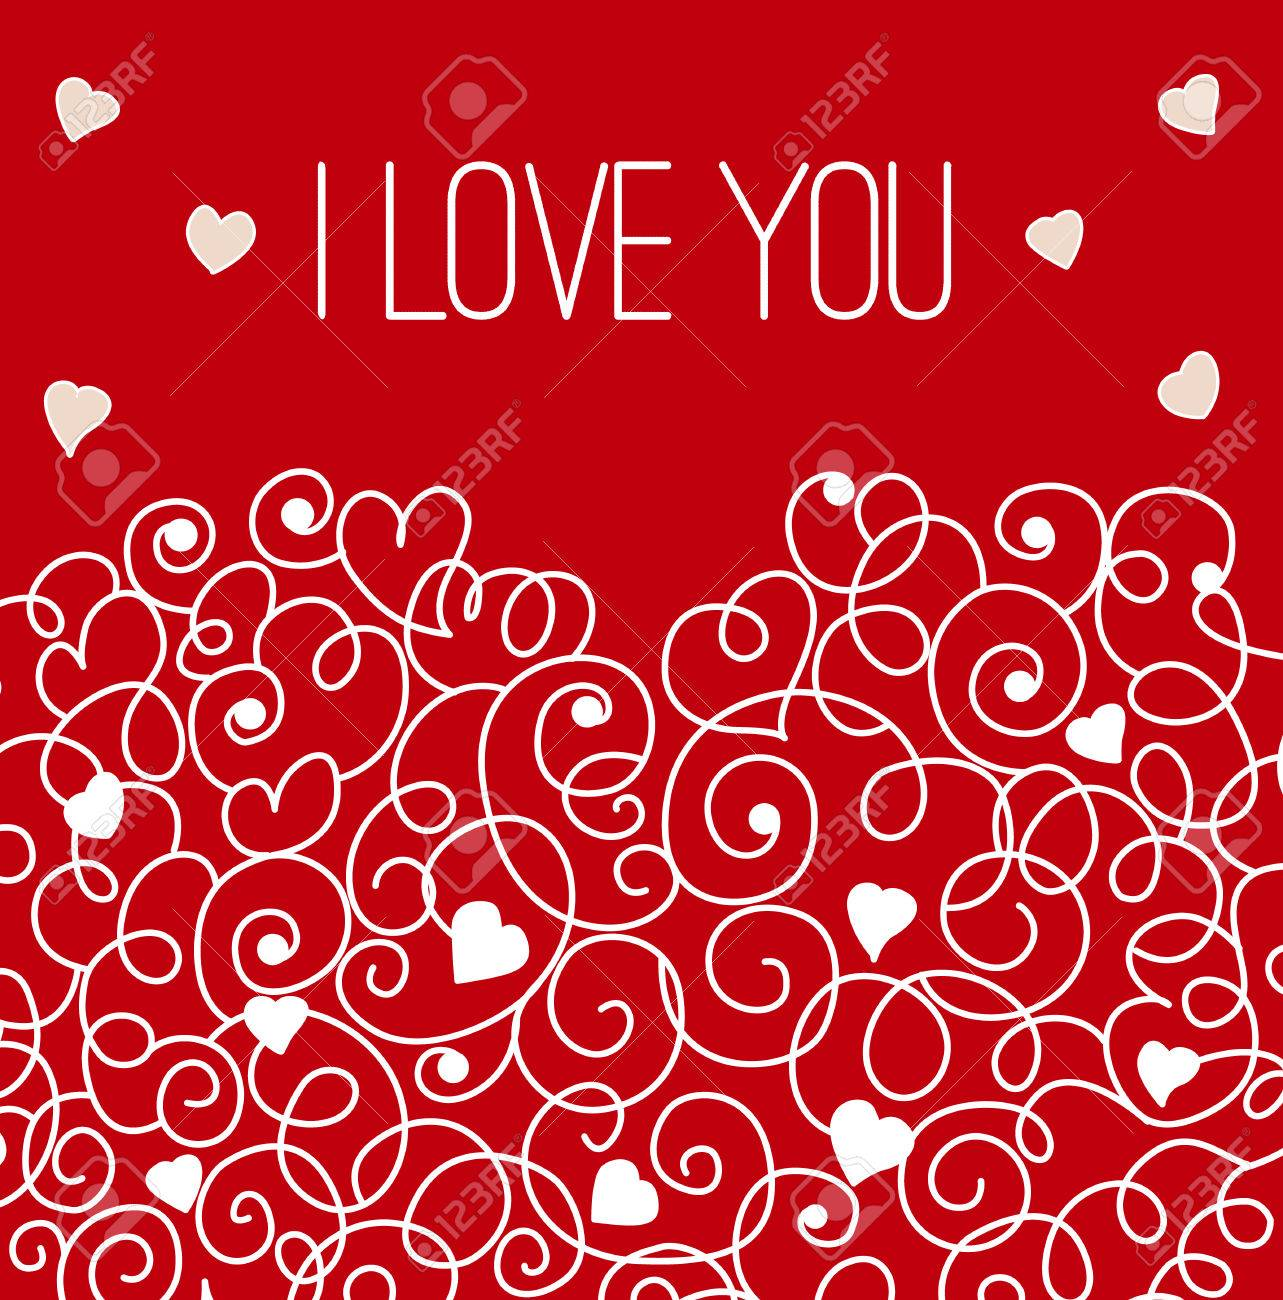 Greeting Card With Floral Heart Shape I Love You Sign Royalty Free